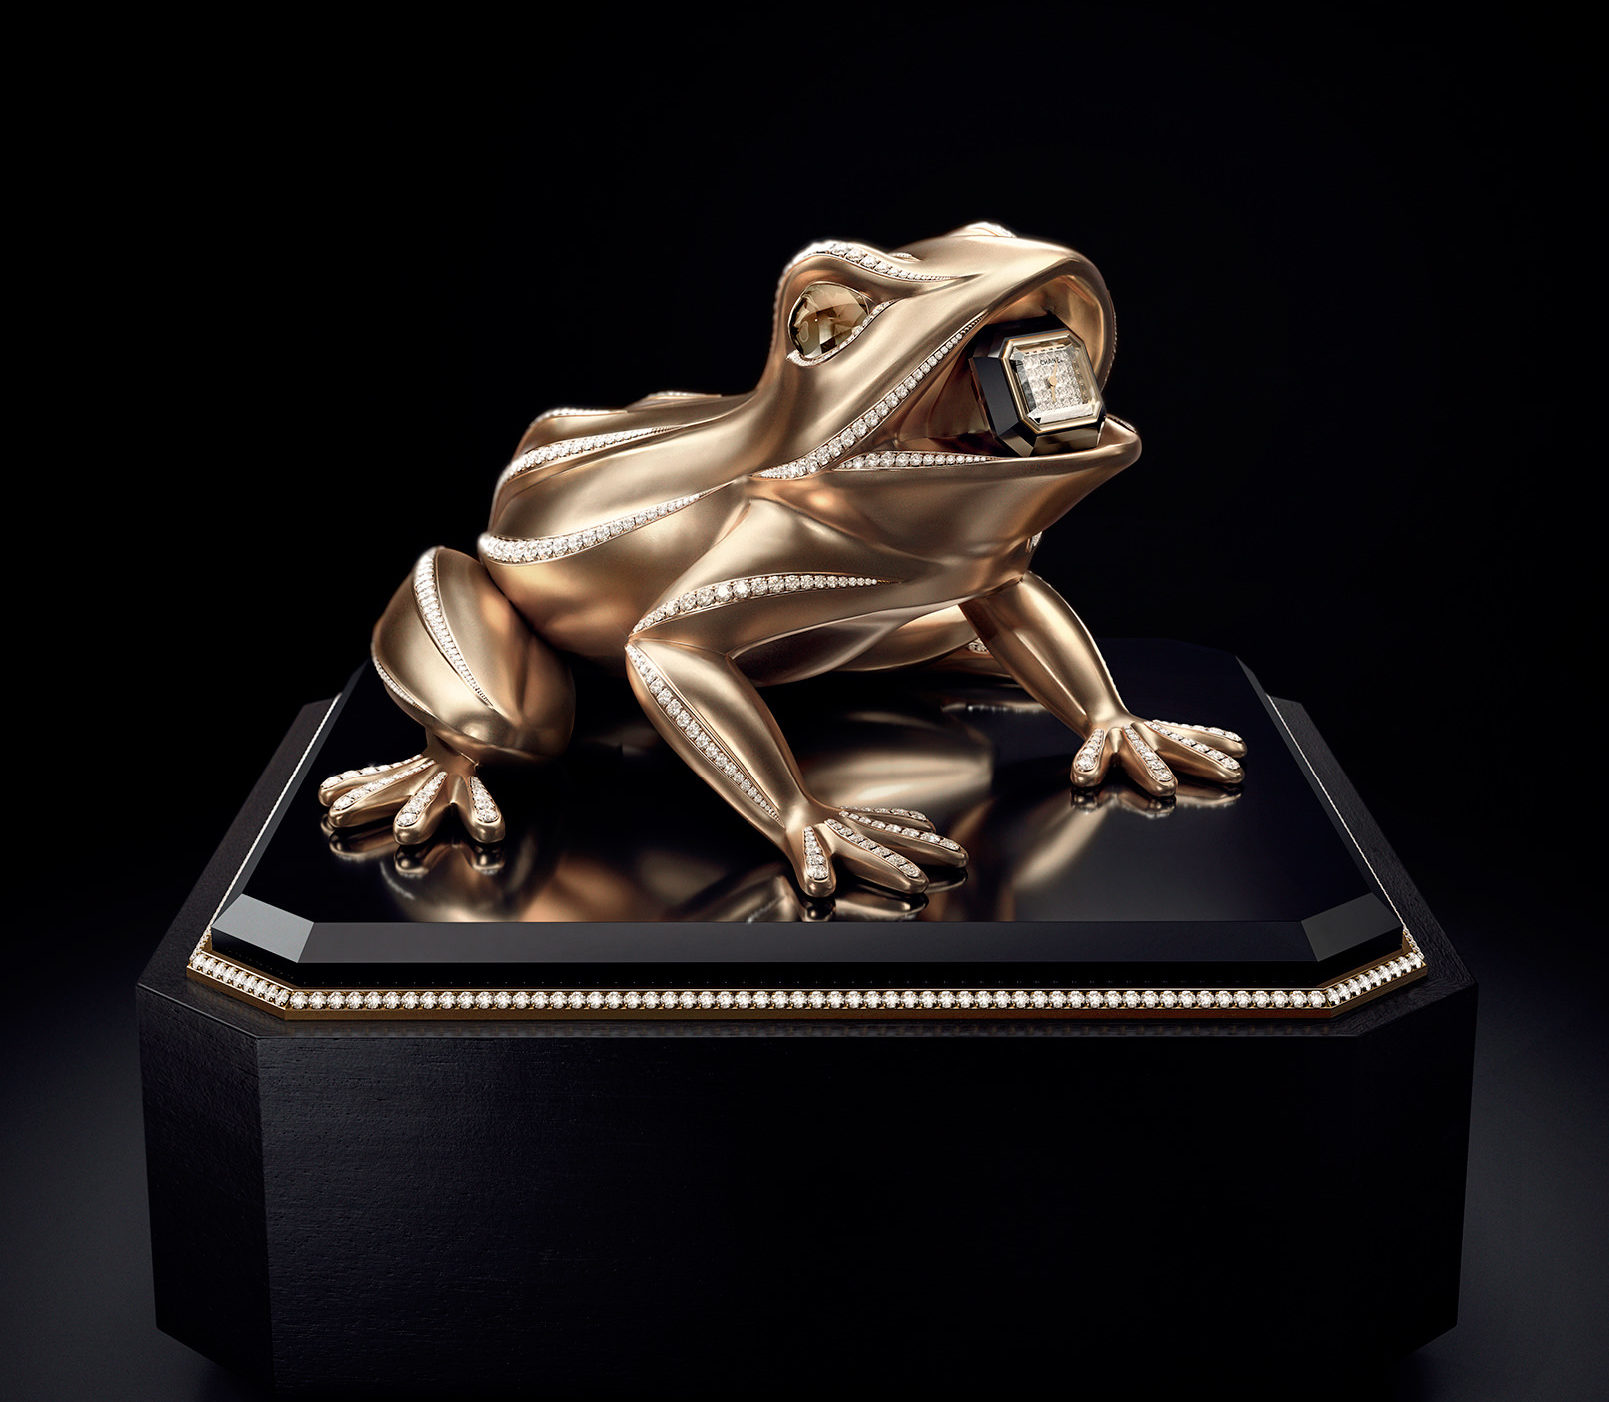 A Chanel Frog That Tells Time